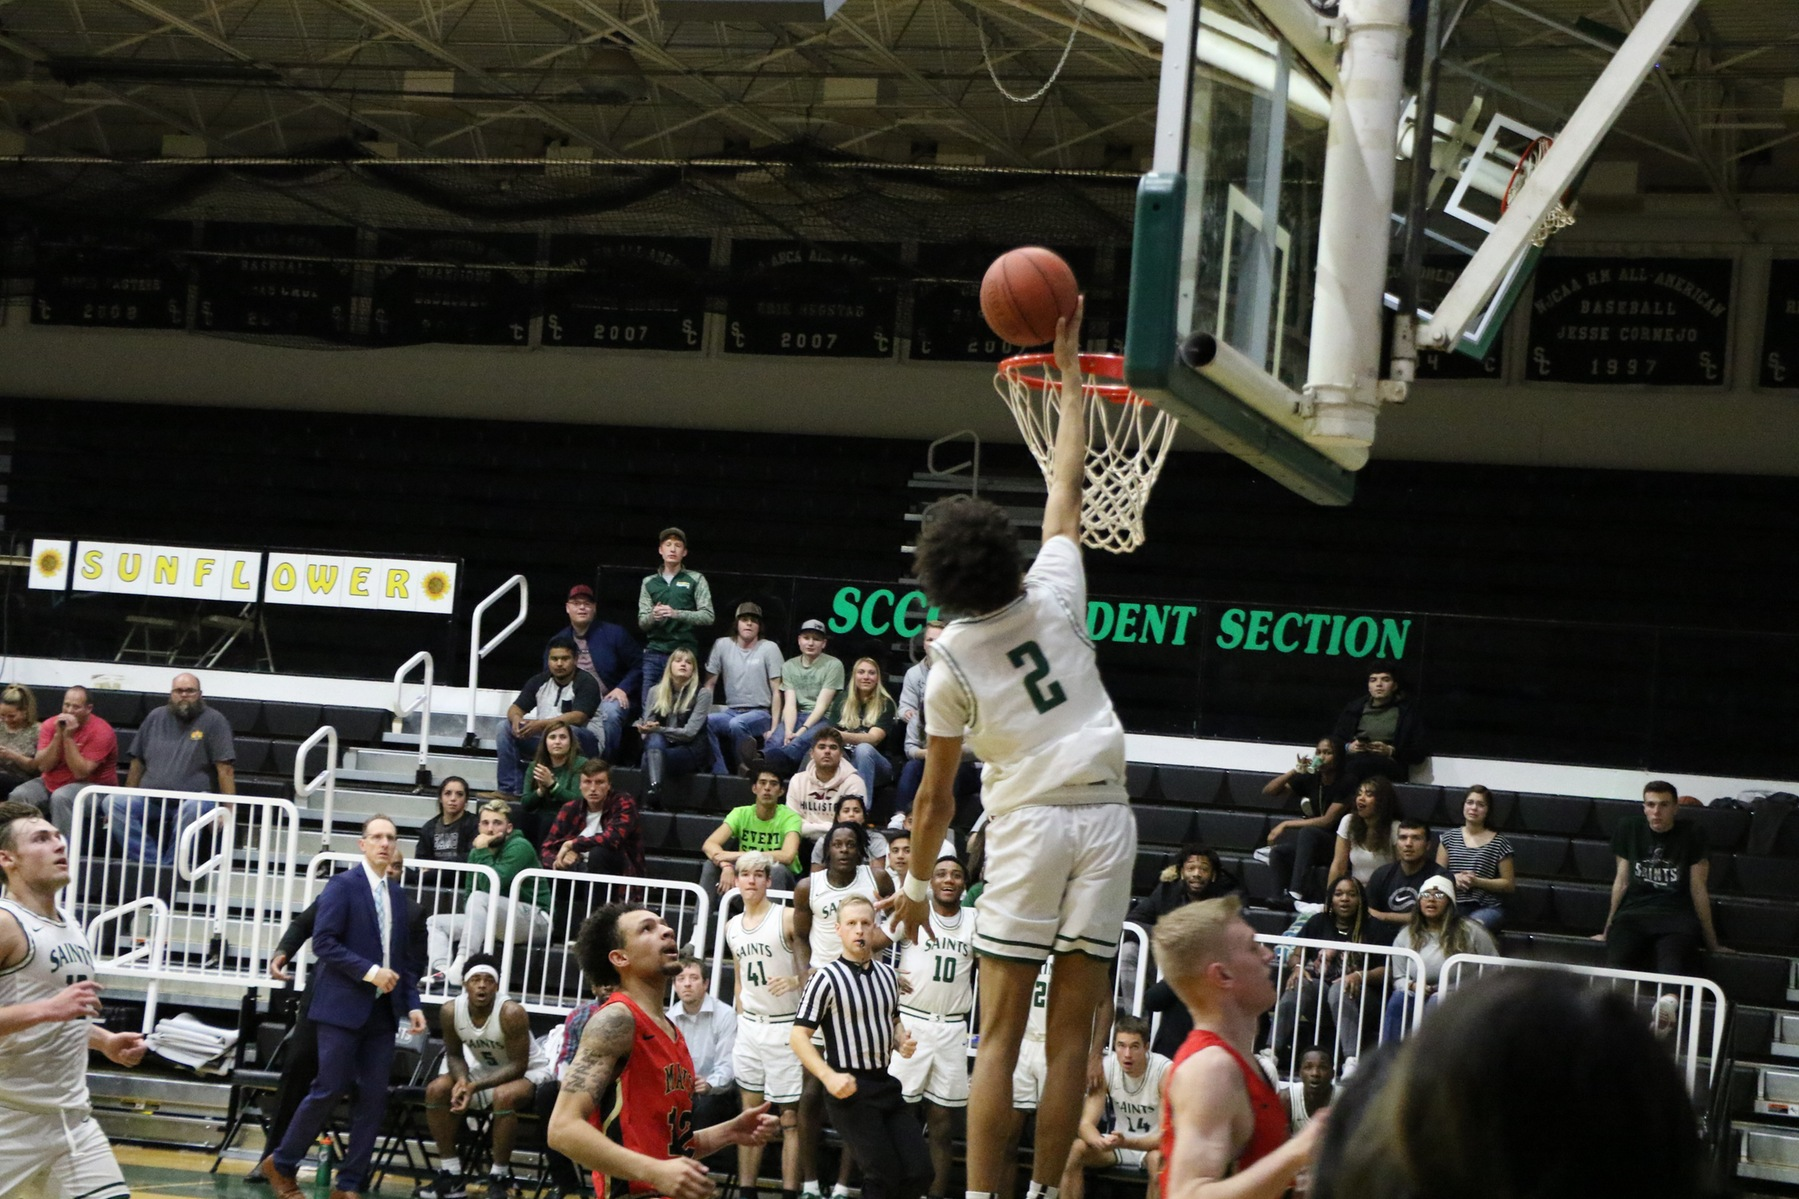 Saints Roll to Victory Over Northwest Tech